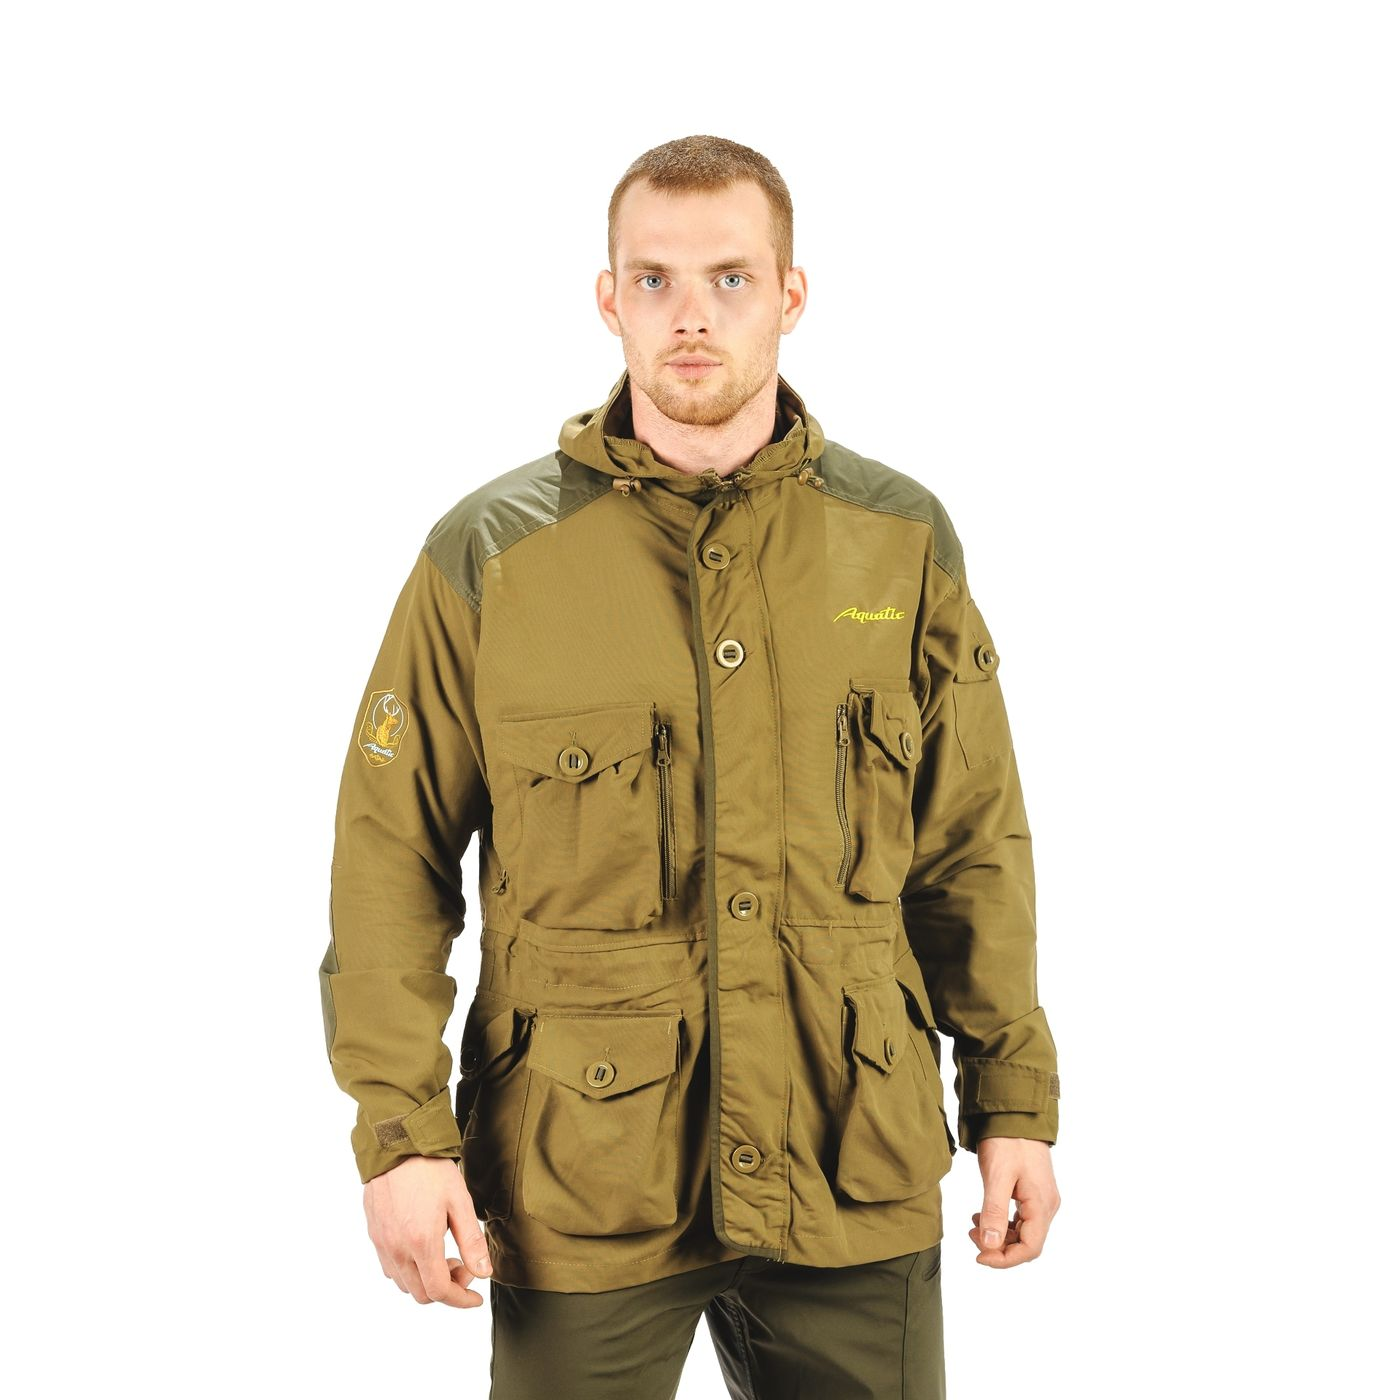 Hunter Jacket Aquatic Ko-01 Ko-01 M